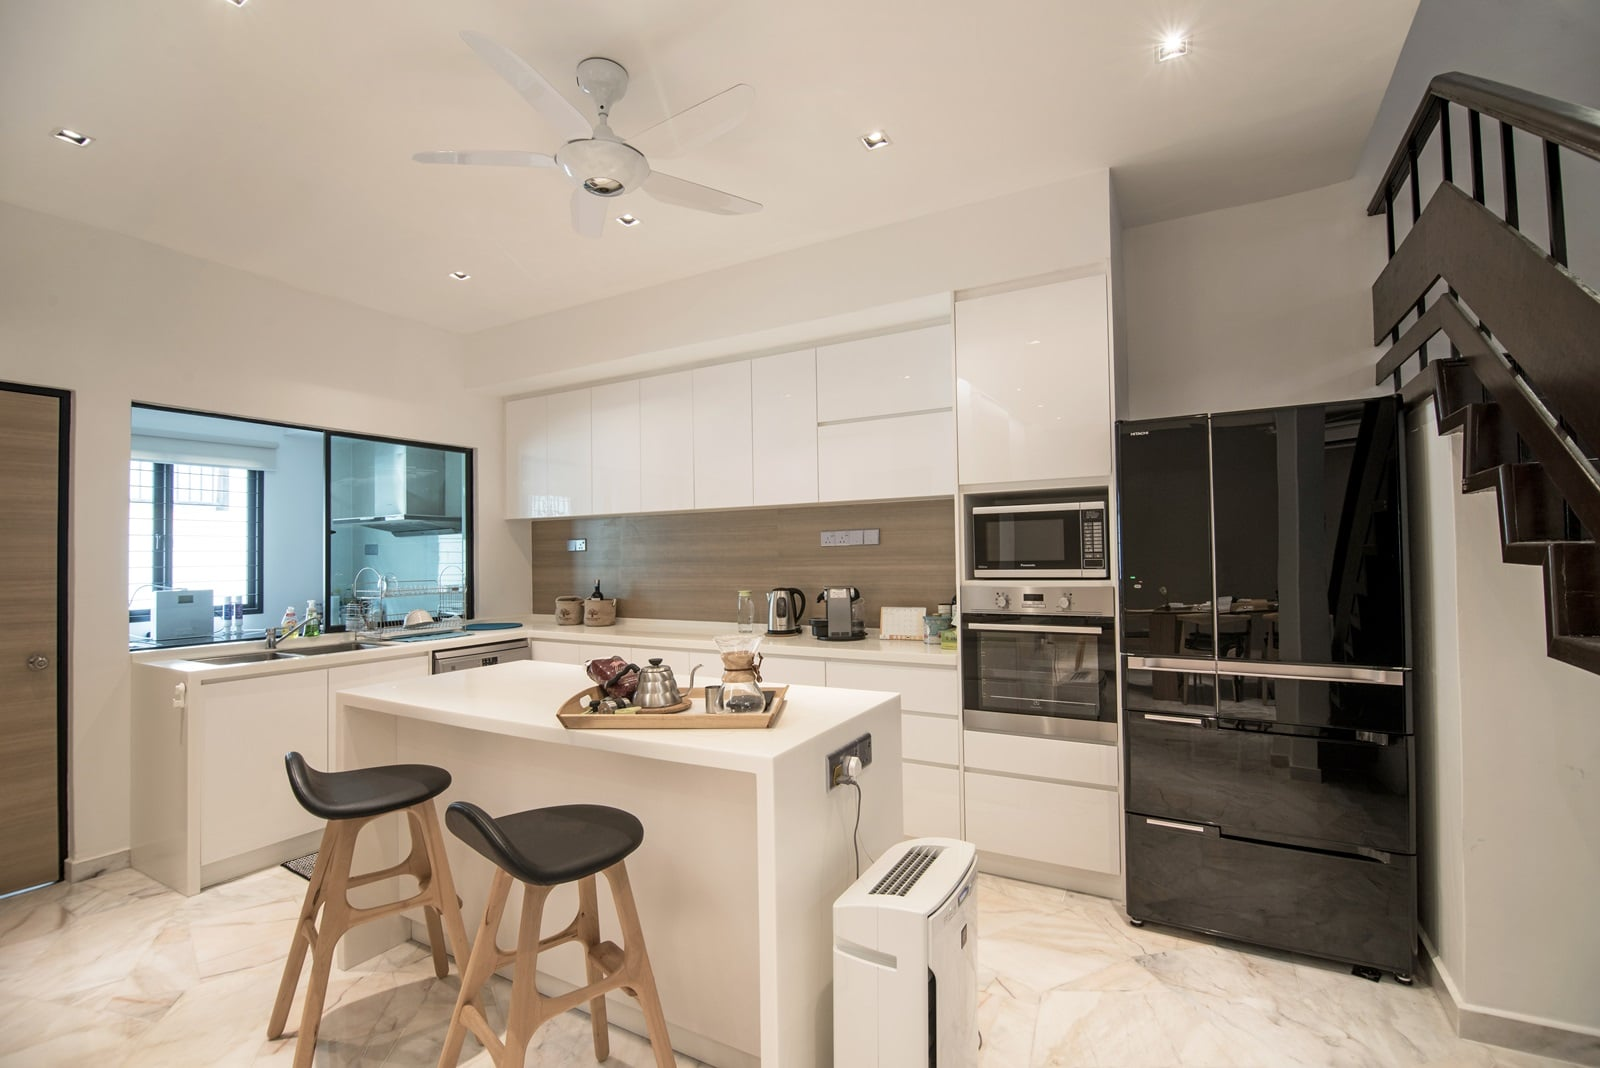 30 year old ttdi terrace house receives a nu infinity makeover for Infinity kitchen designs